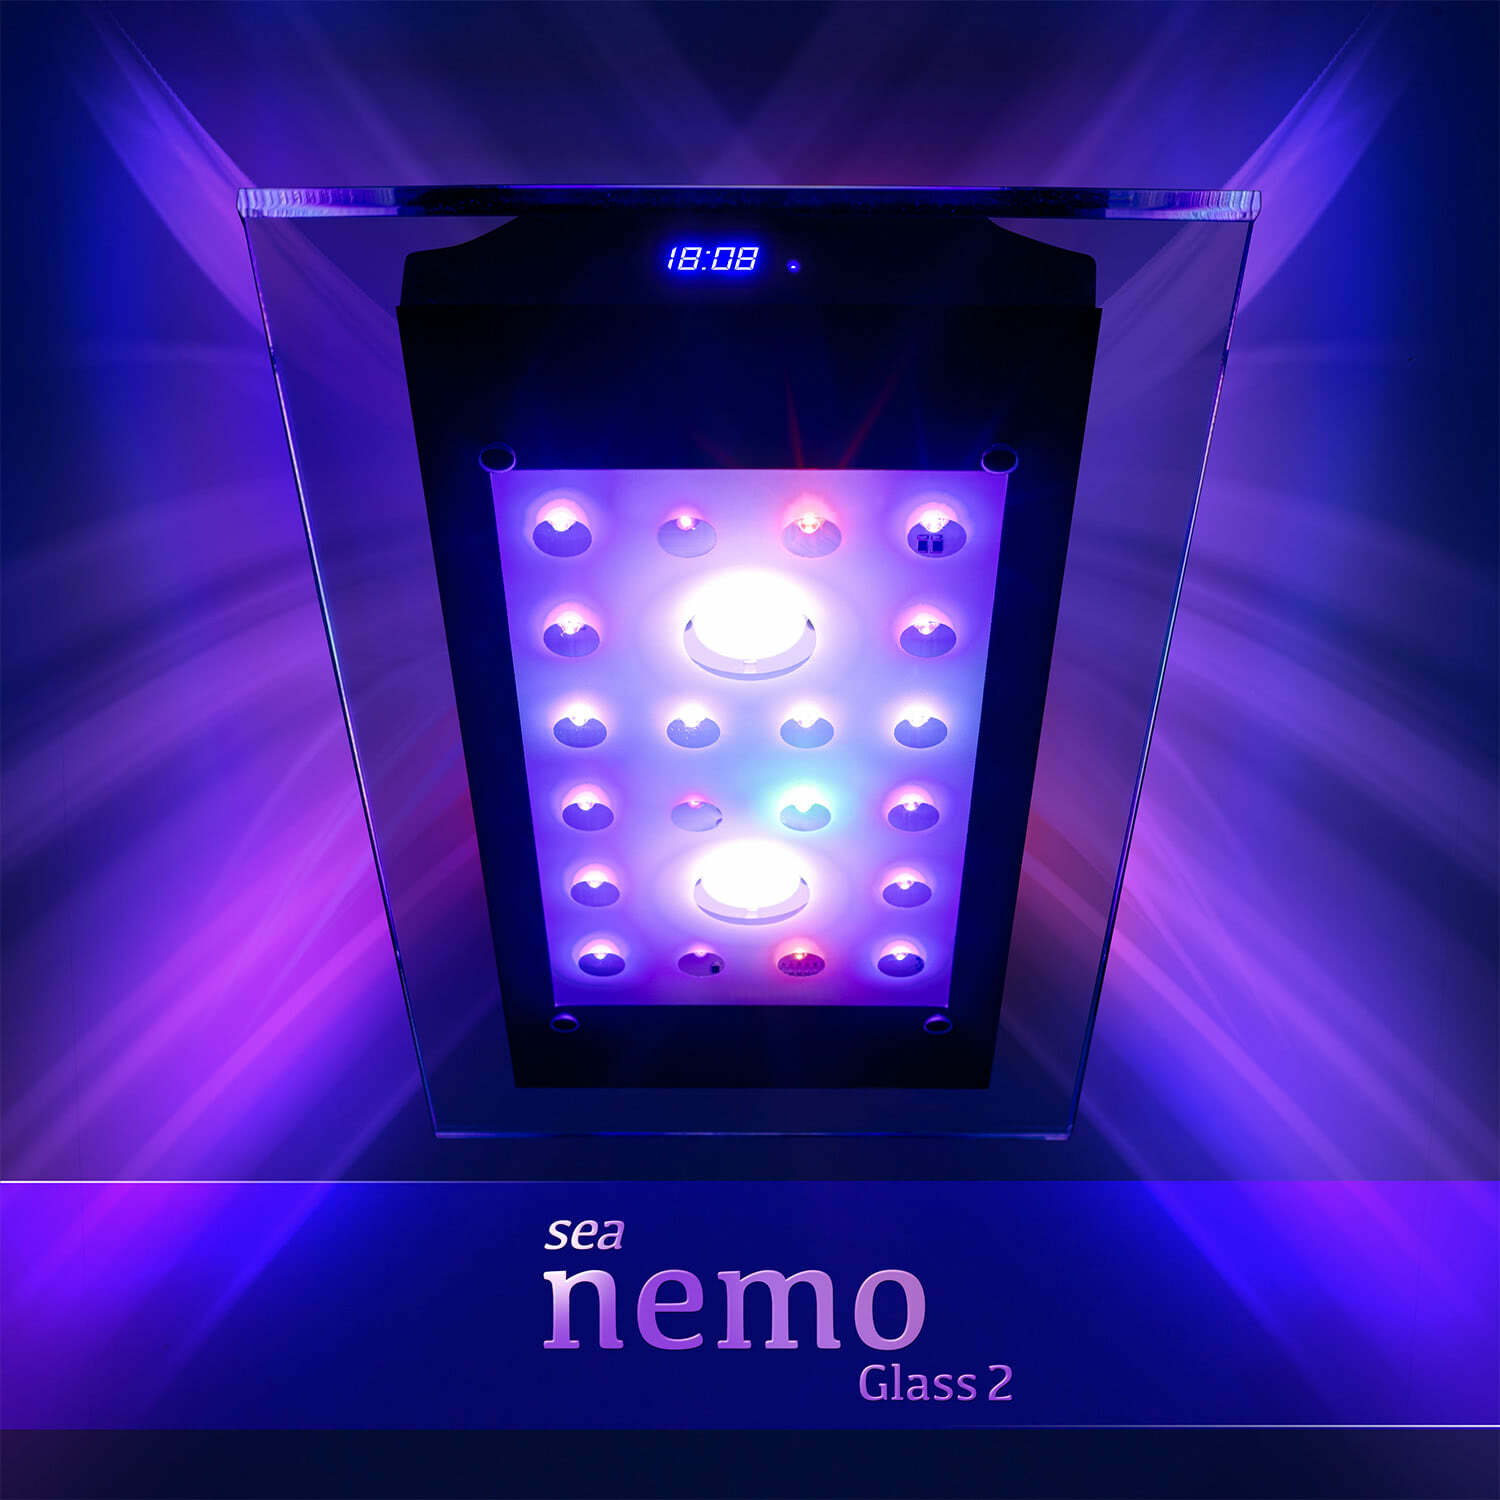 sea nemo glass 2 led korallen meerwasser aquarium beleuchtung lampe esmart ebay. Black Bedroom Furniture Sets. Home Design Ideas